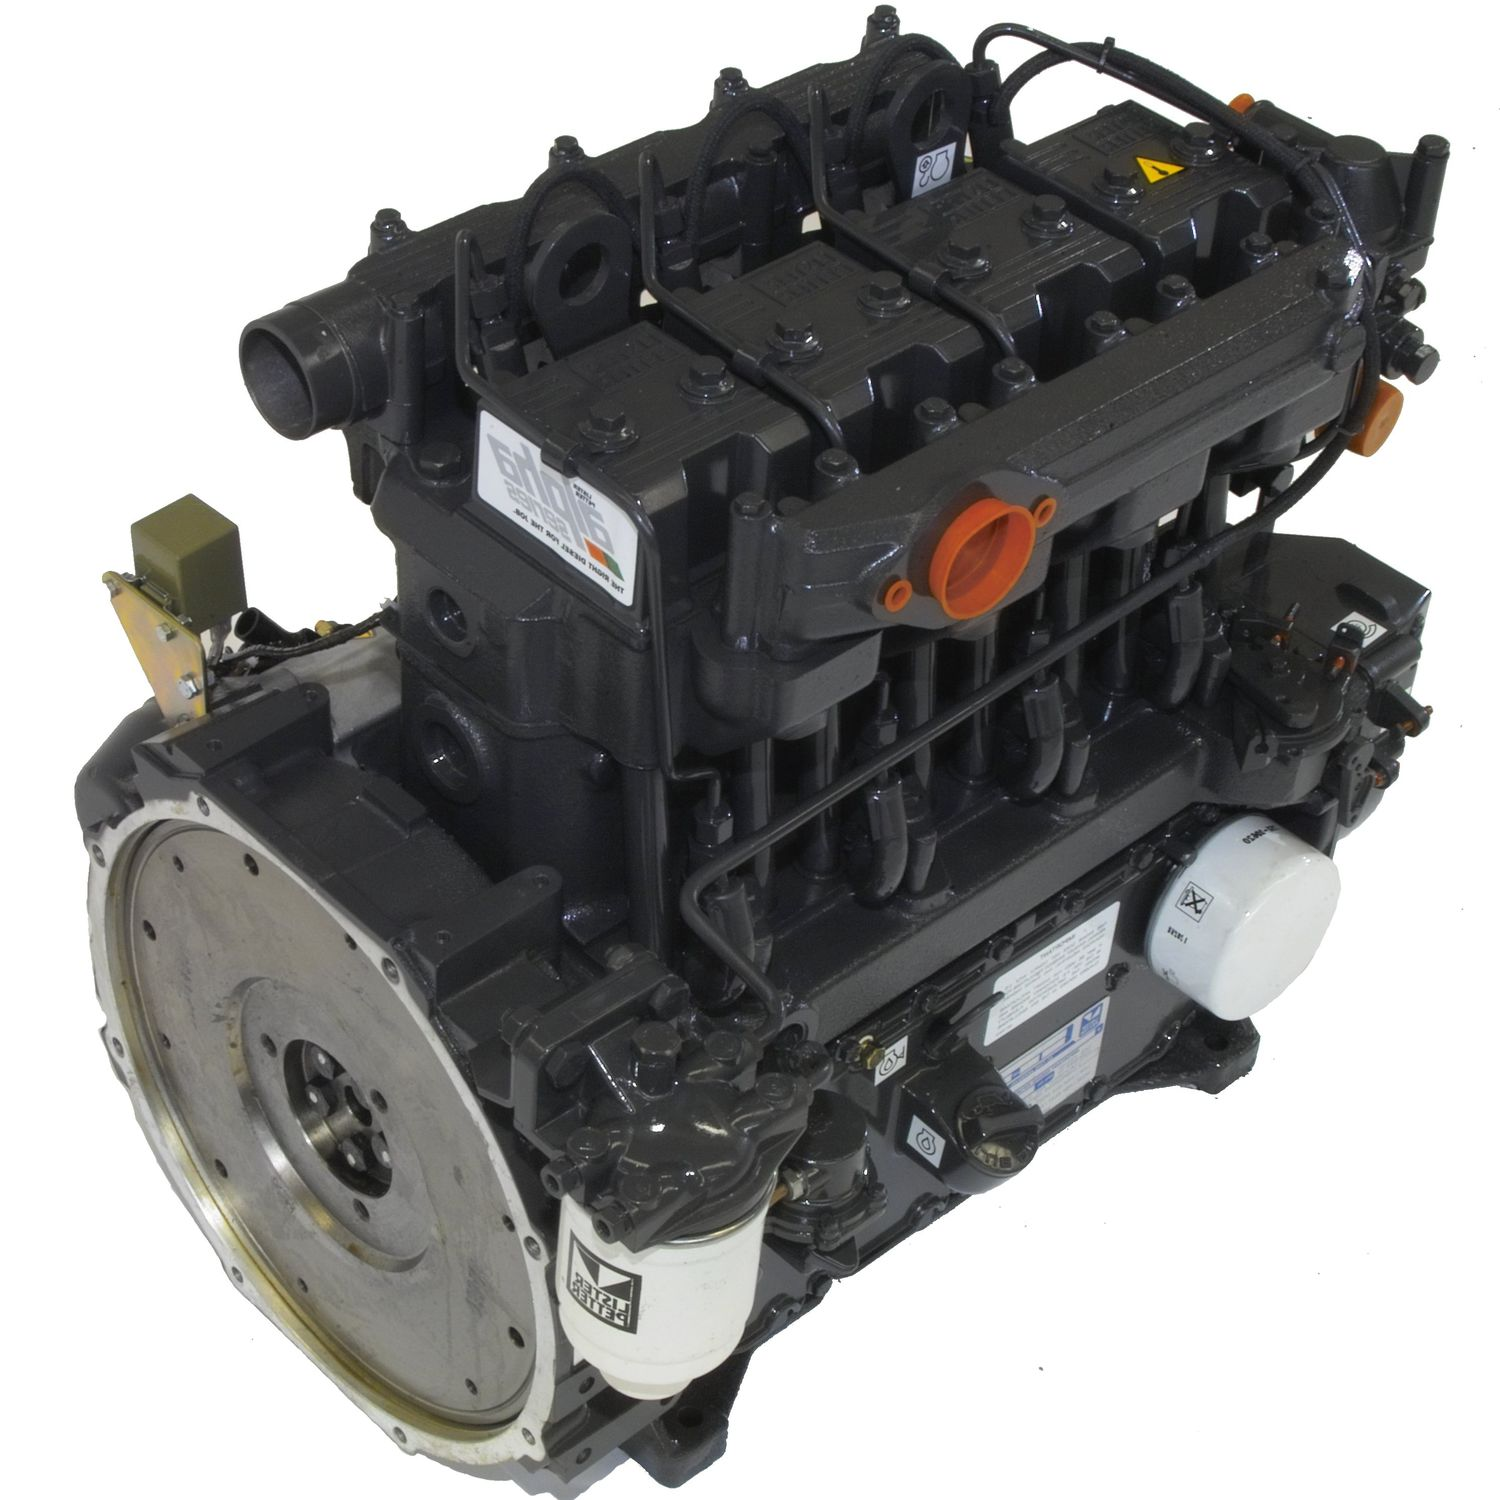 Diesel engine 4 cylinder turbocharged direct injection